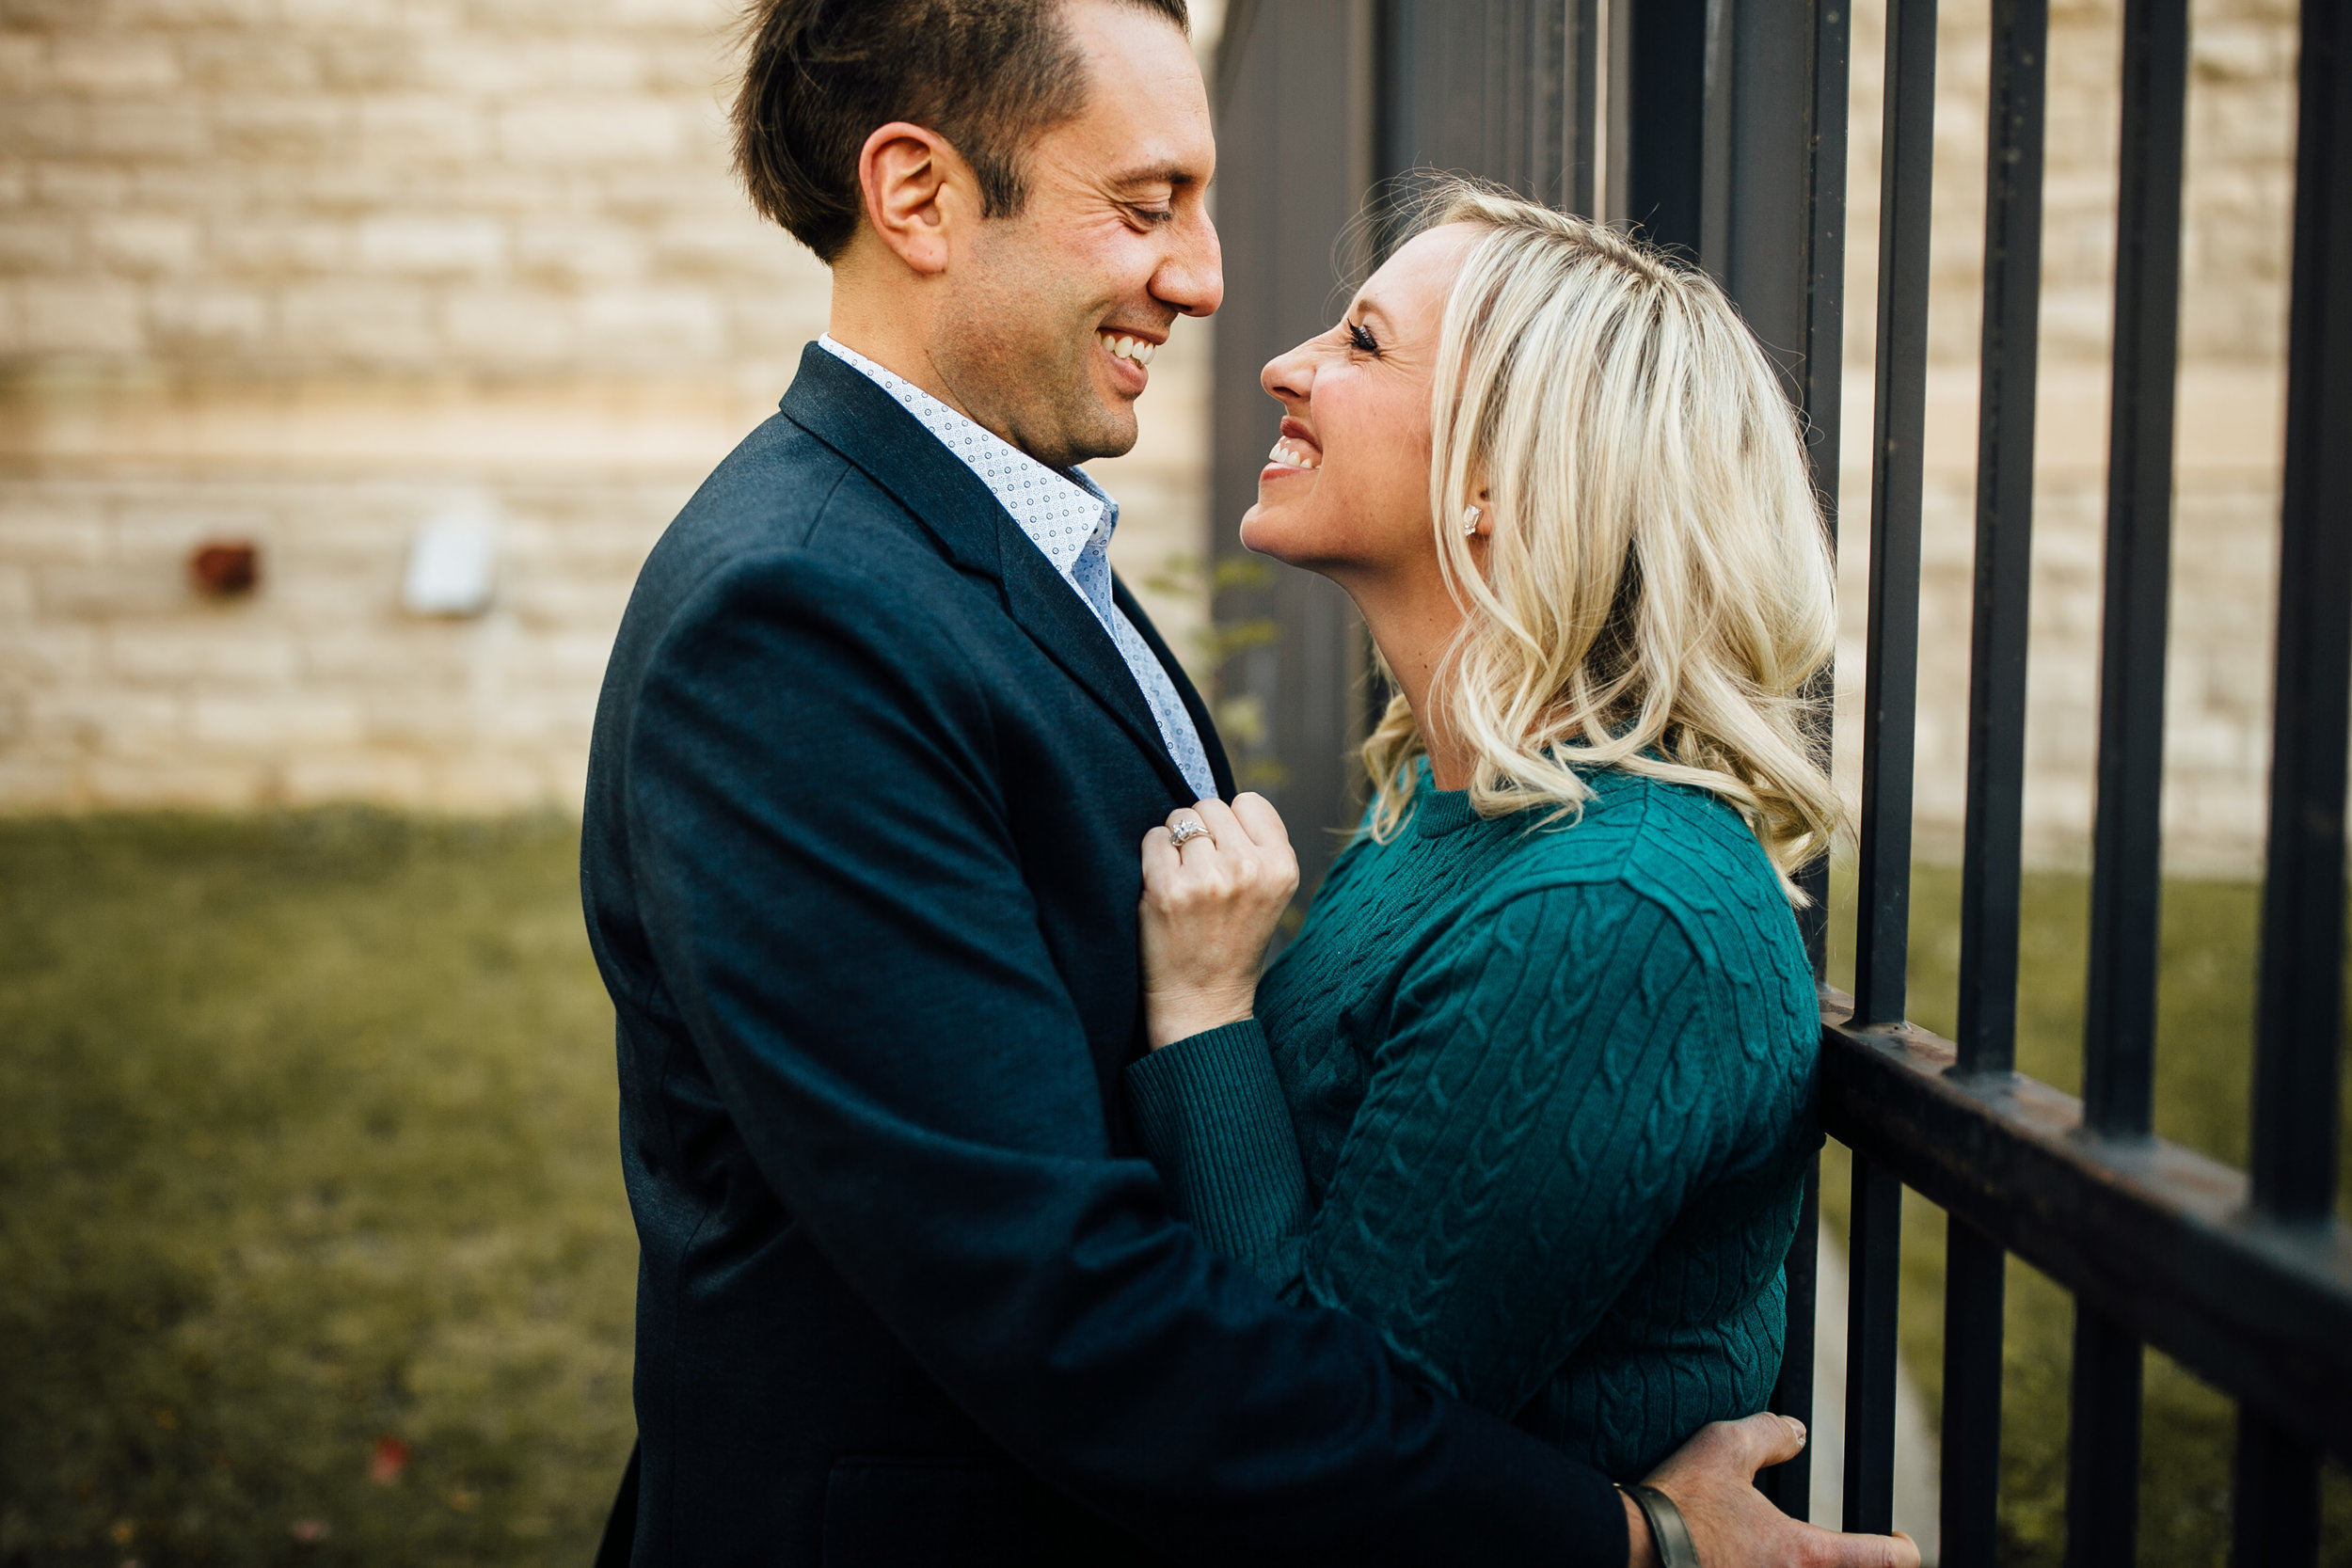 Liz-Dan-Grand-Rapids-Engagement-Michigan-Wedding-Photographer-38.jpg